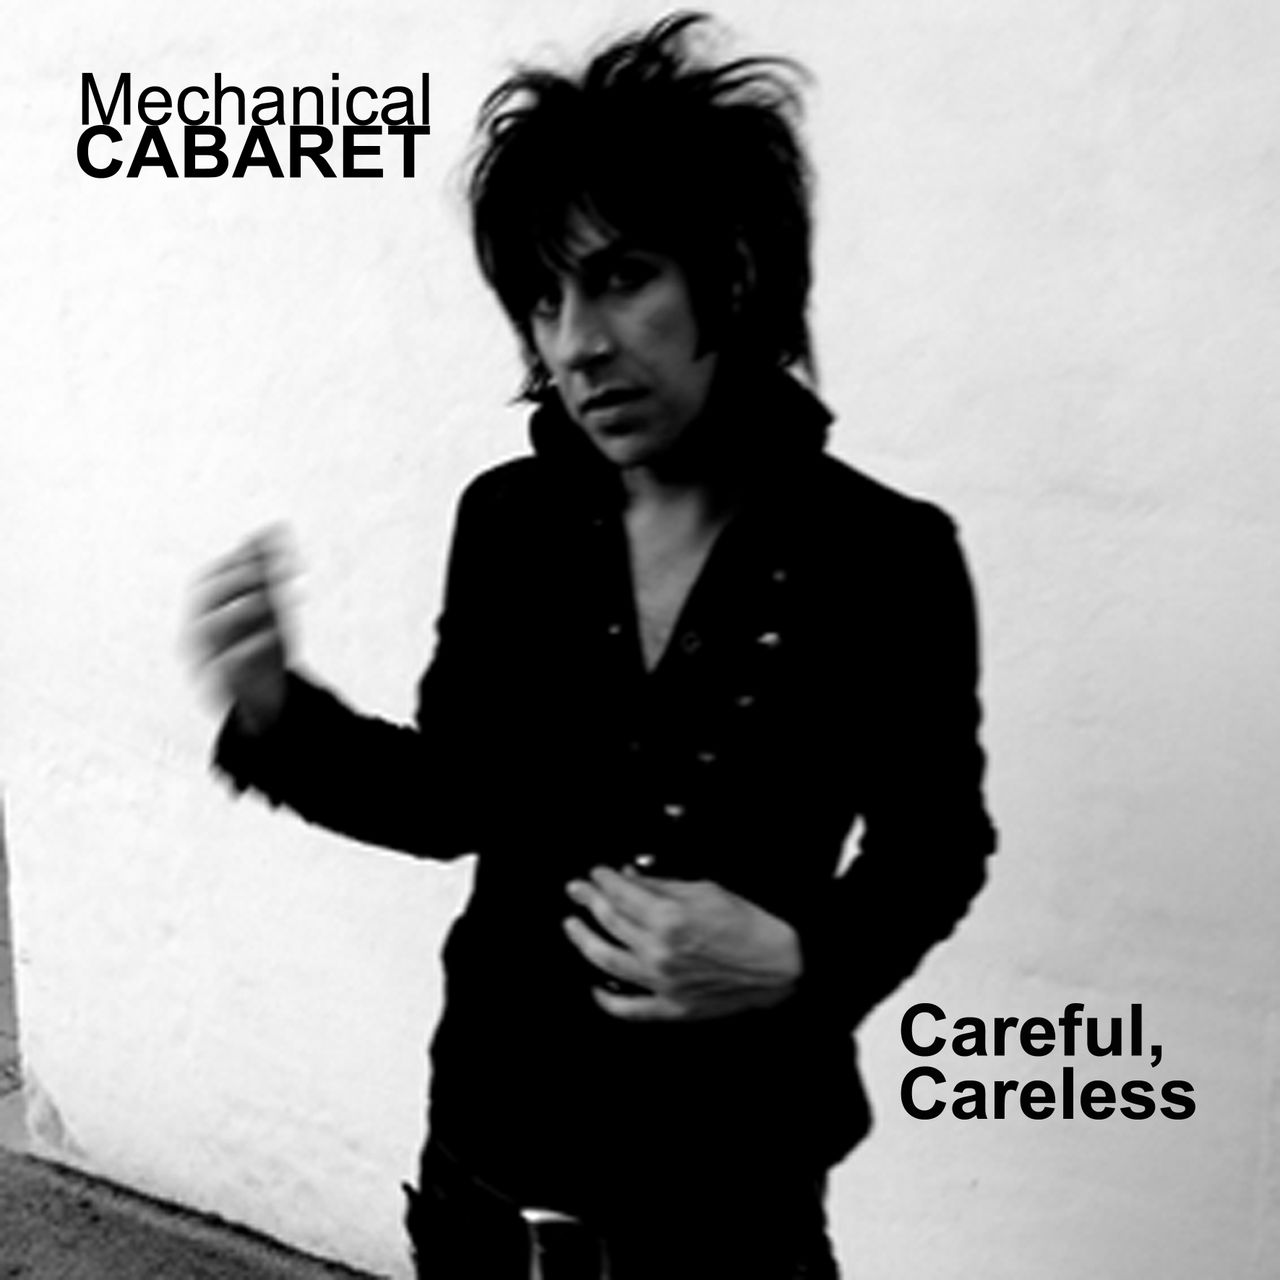 Mechanical Cabaret - Careful, Careless - Single - 4 tracks